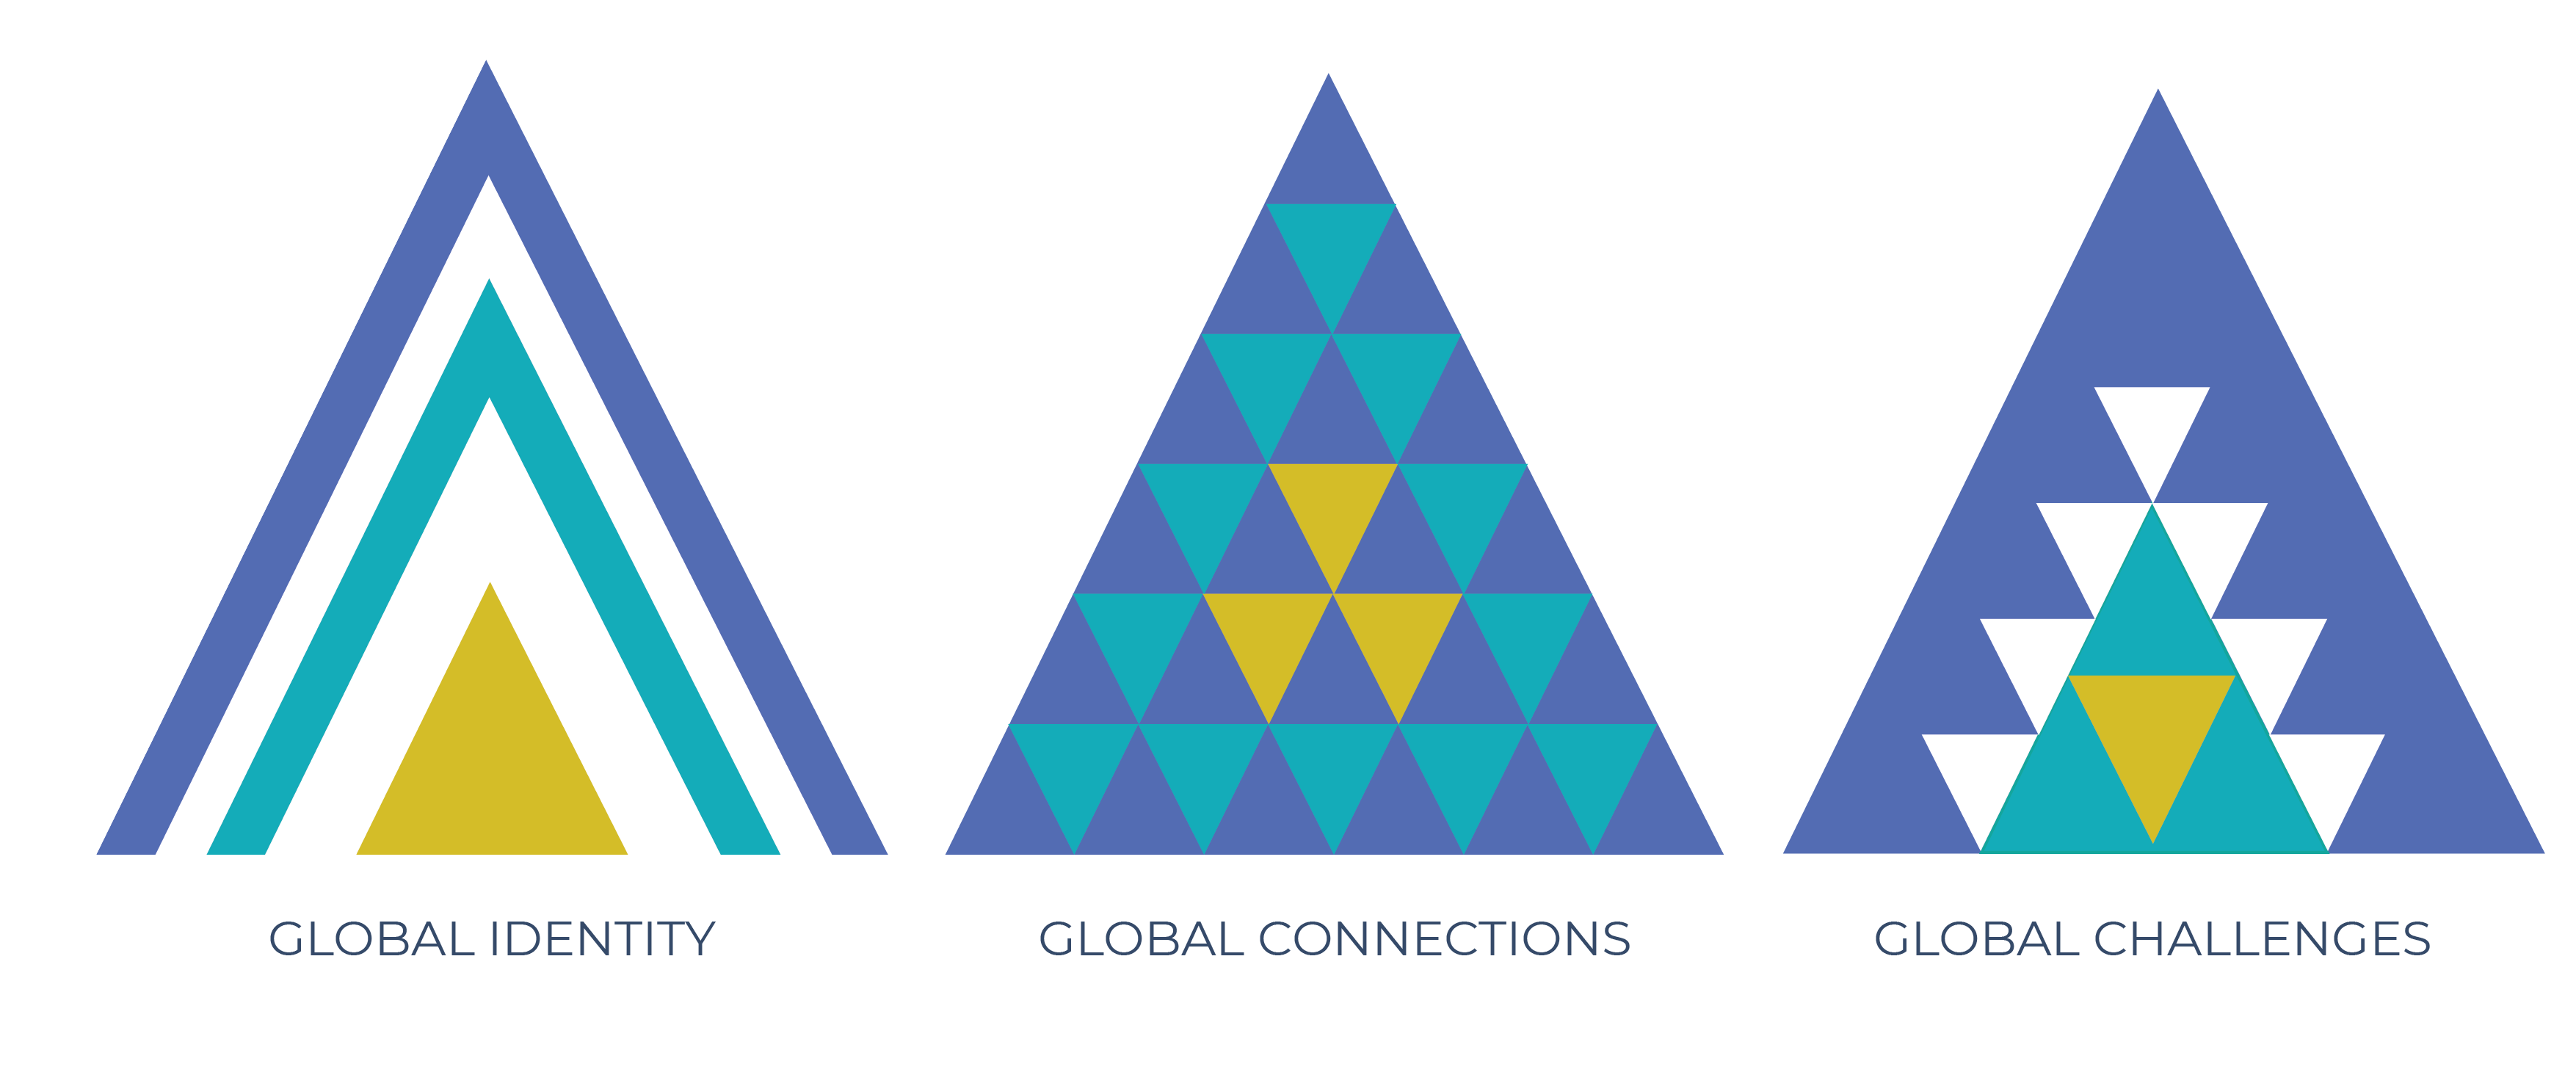 Three triangles designed as logos for each of global identity, global connections, and global challenges.